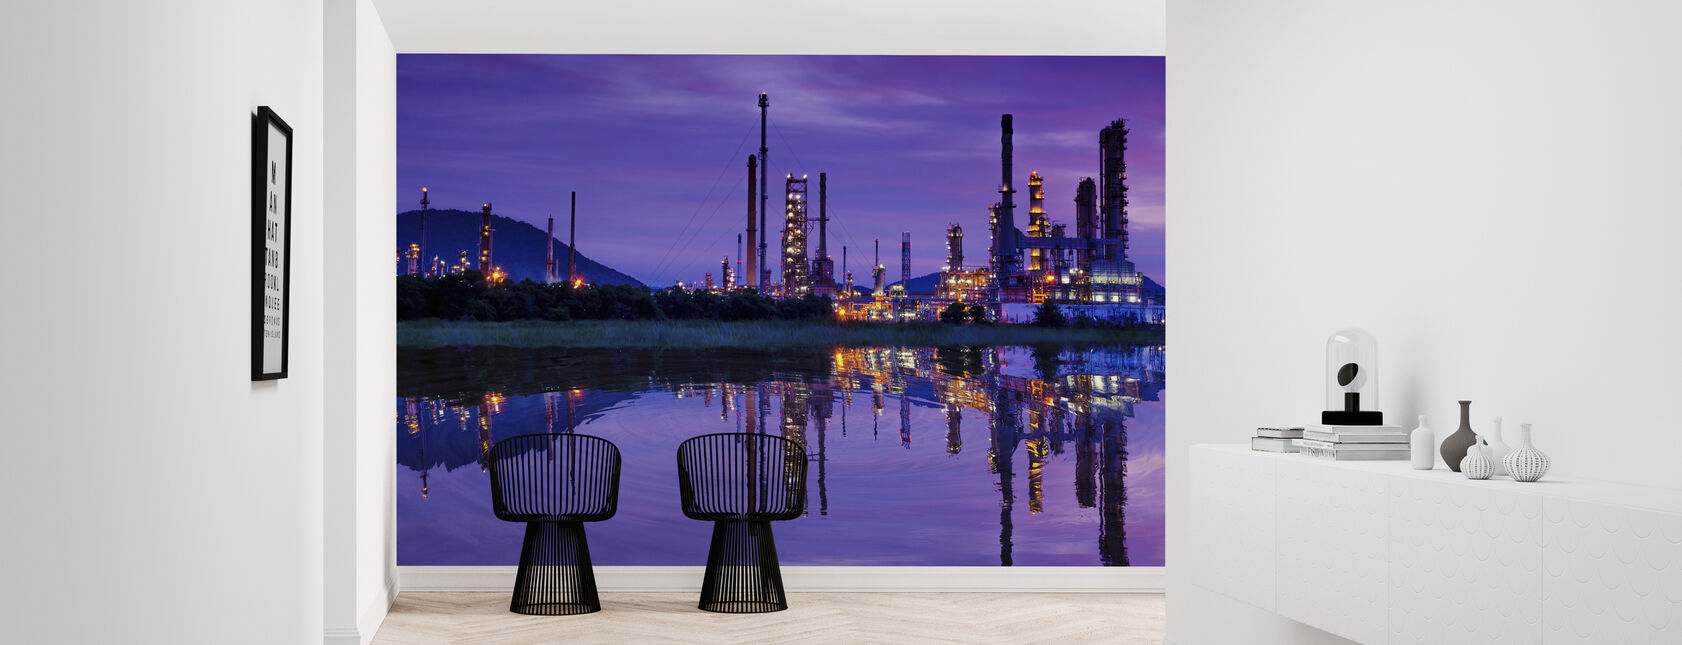 Petrochemical Industry - Wallpaper - Hallway